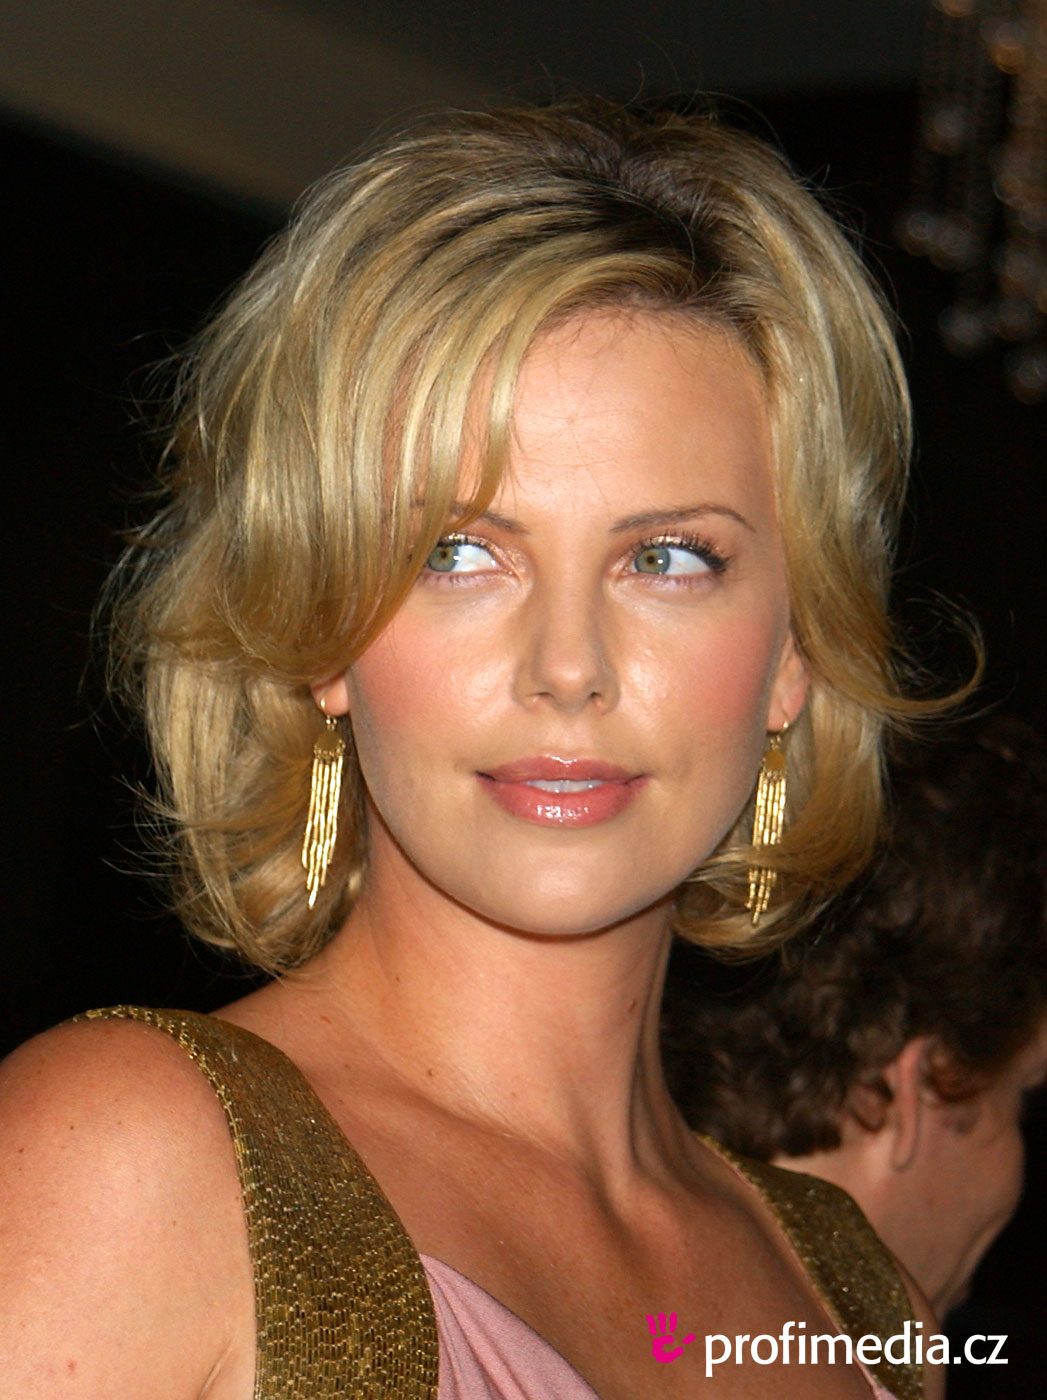 celebrity charlize theron hairstyle wallpaper prom. Black Bedroom Furniture Sets. Home Design Ideas